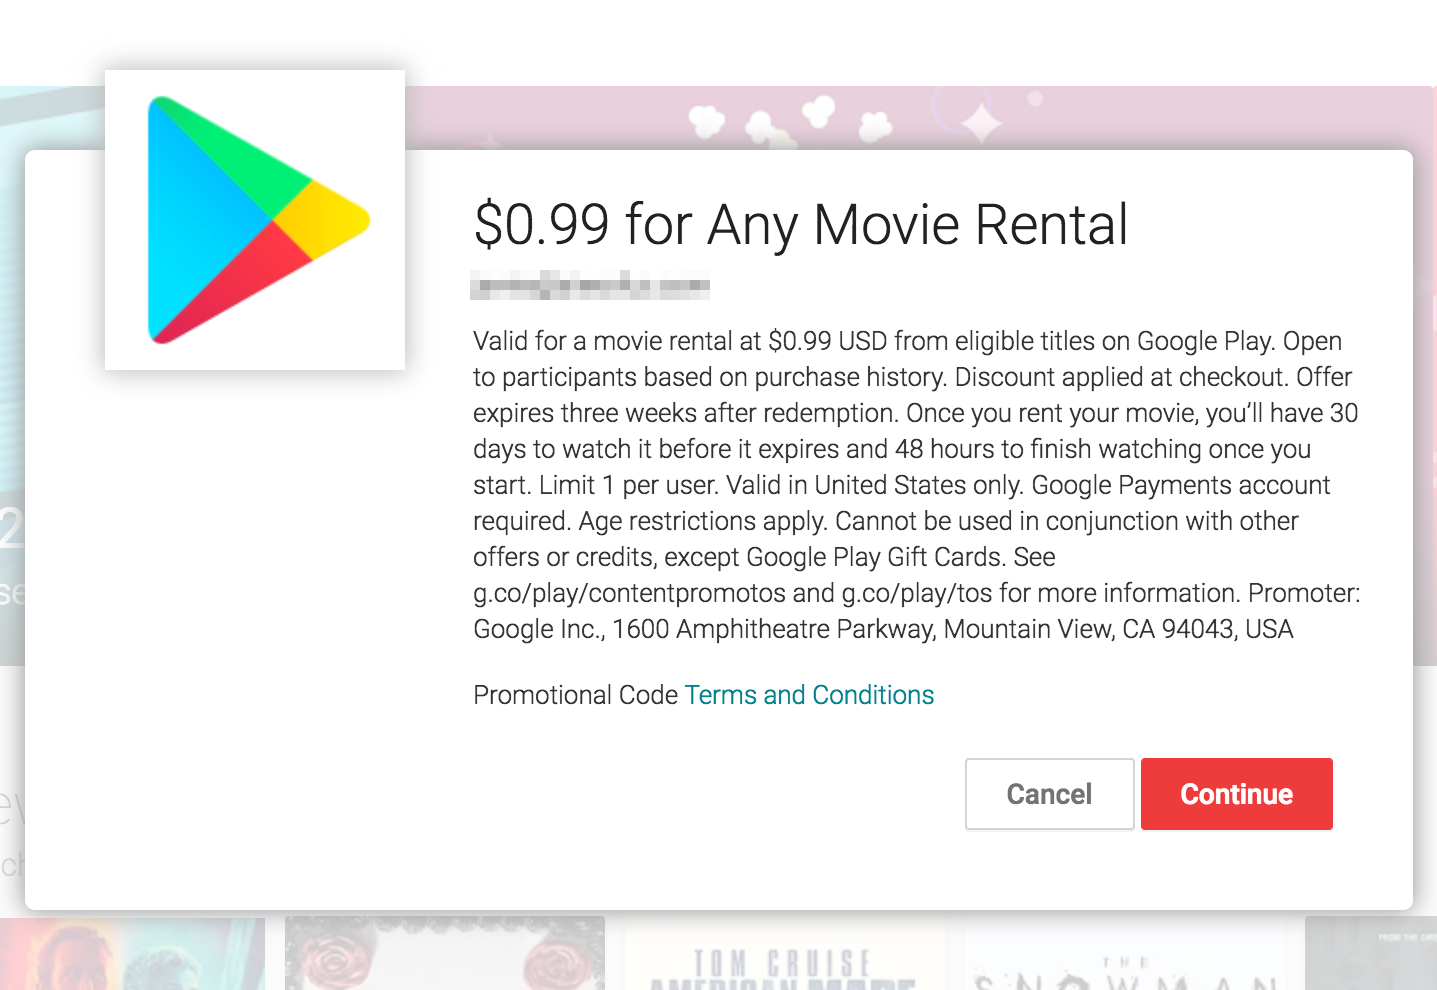 $0.99 for Any Movie Rental